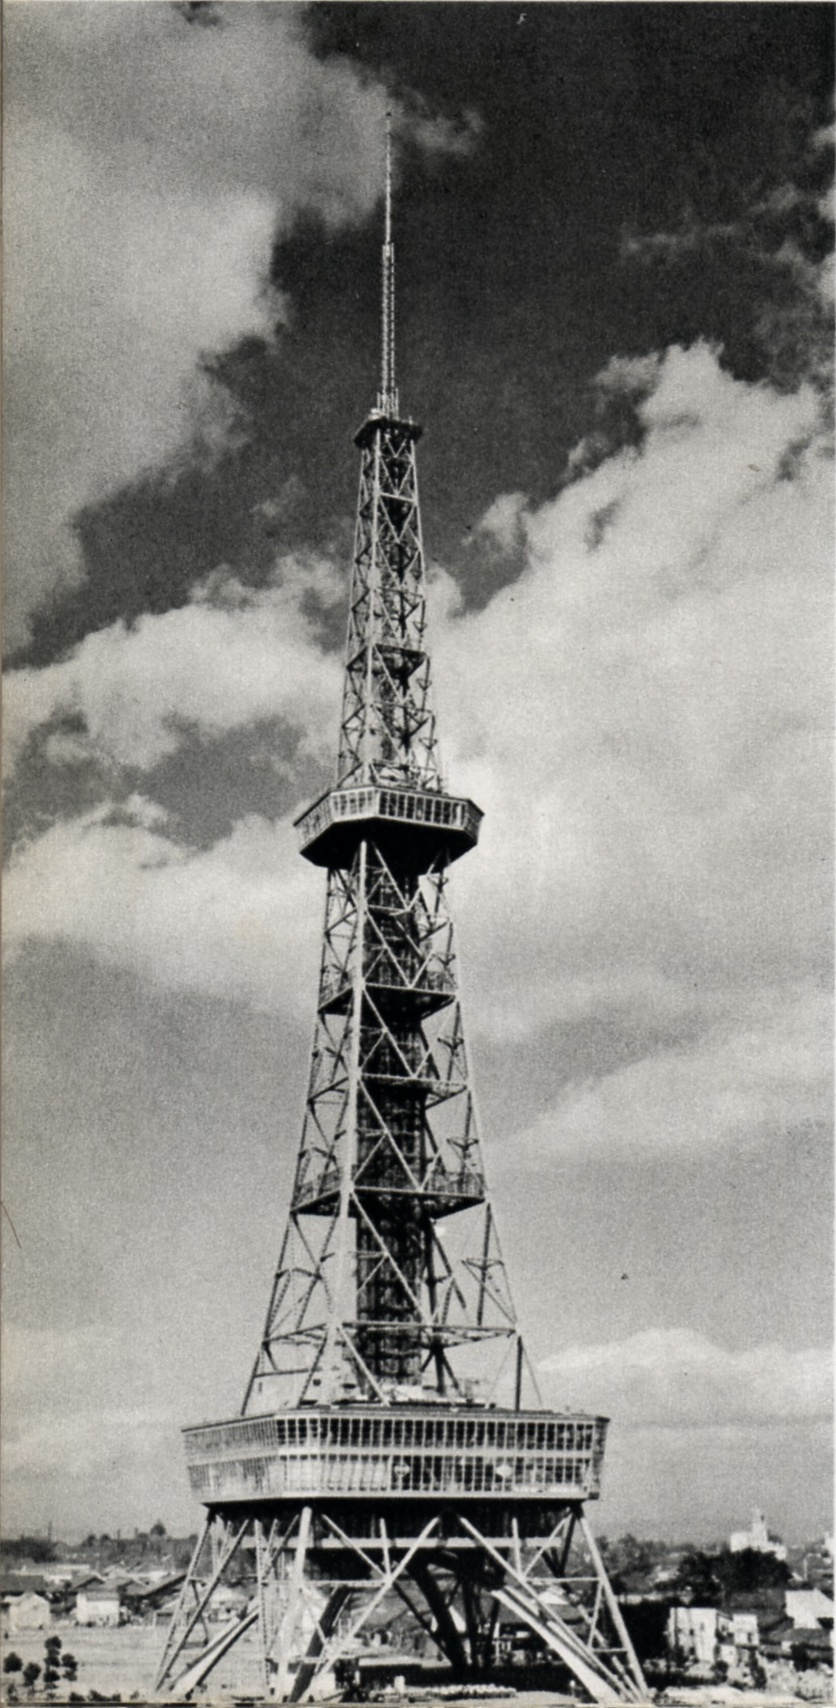 https://upload.wikimedia.org/wikipedia/commons/9/9d/Nagoya_TV_Tower_1961.jpg